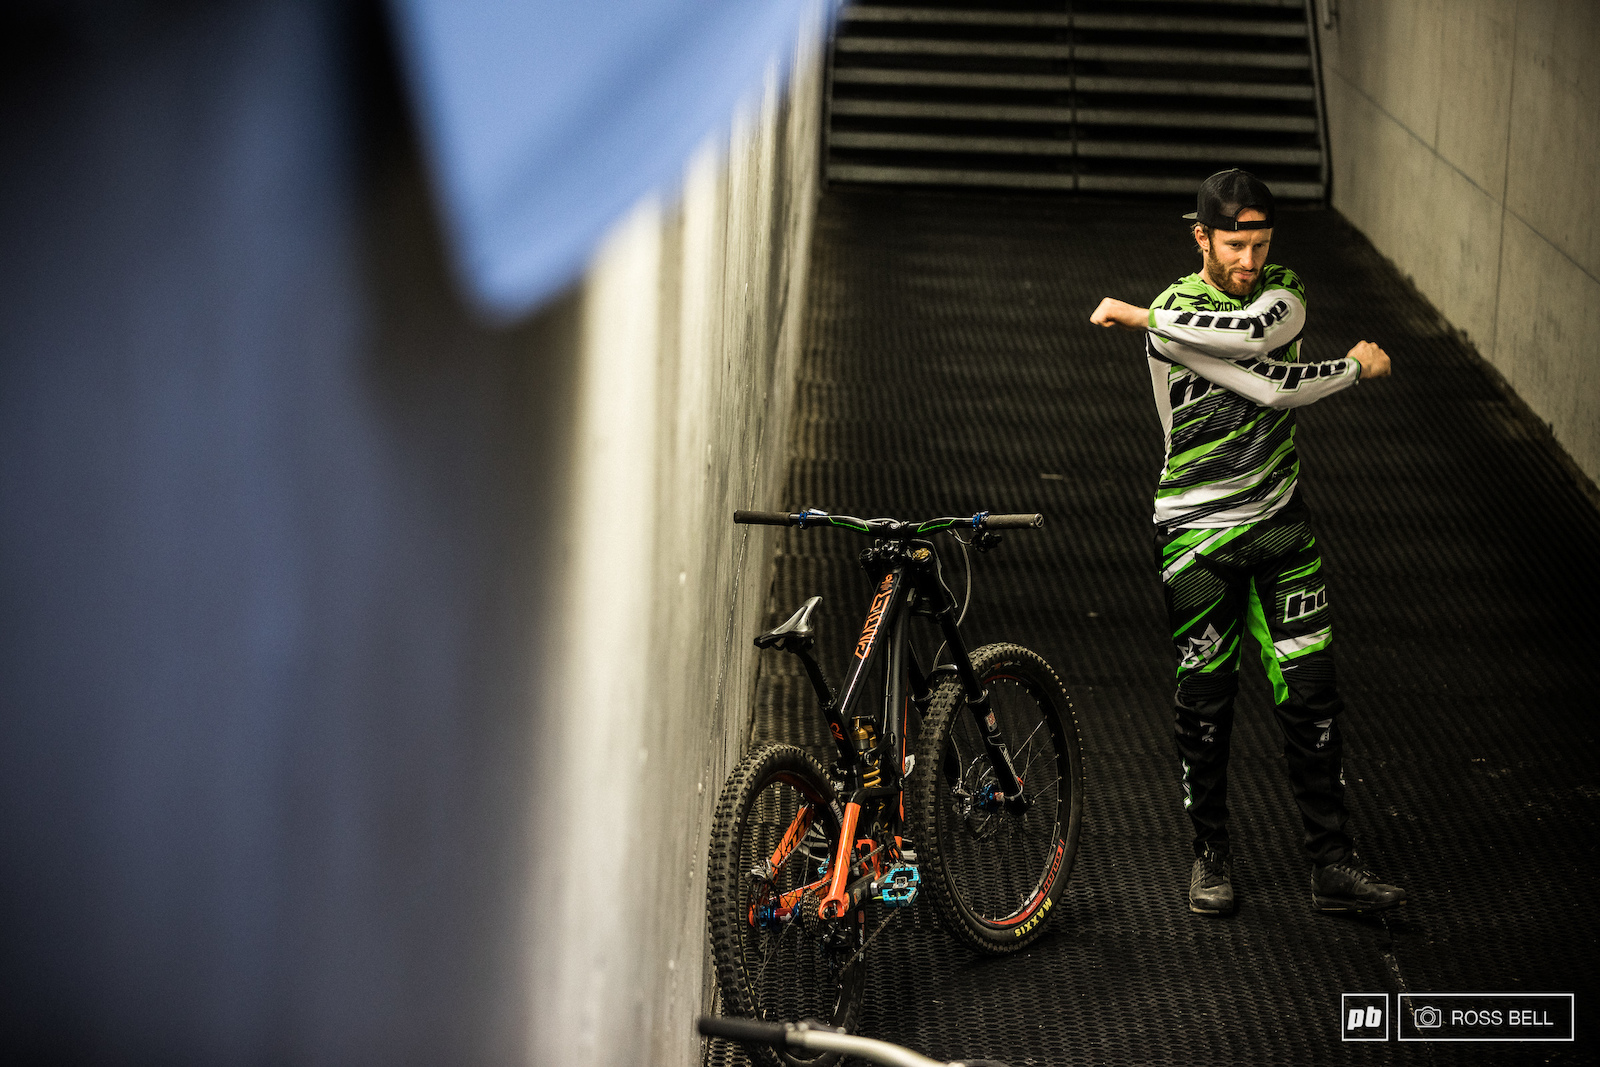 Adam Brayton limbering up for what would end up being a top 10 worthy run.